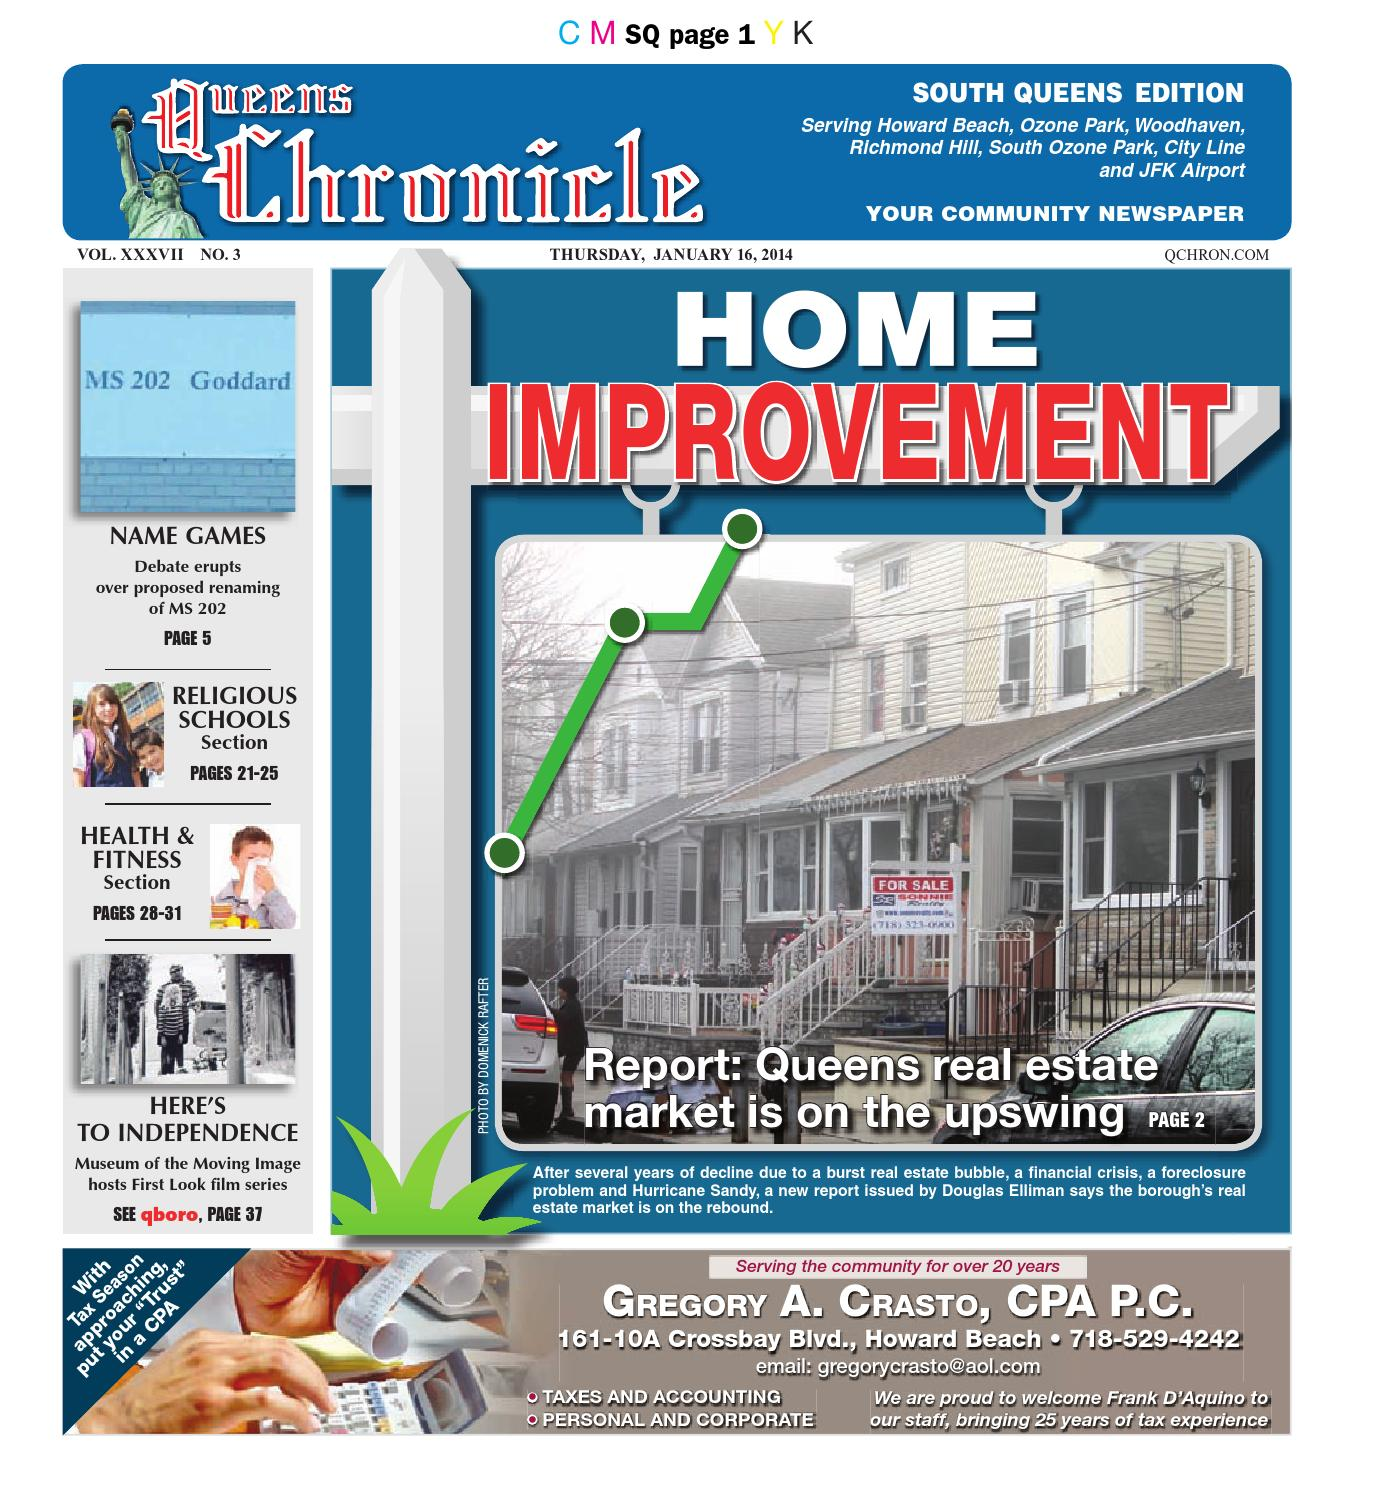 Queens Chronicle South Edition 01 16 14 by Queens Chronicle issuu